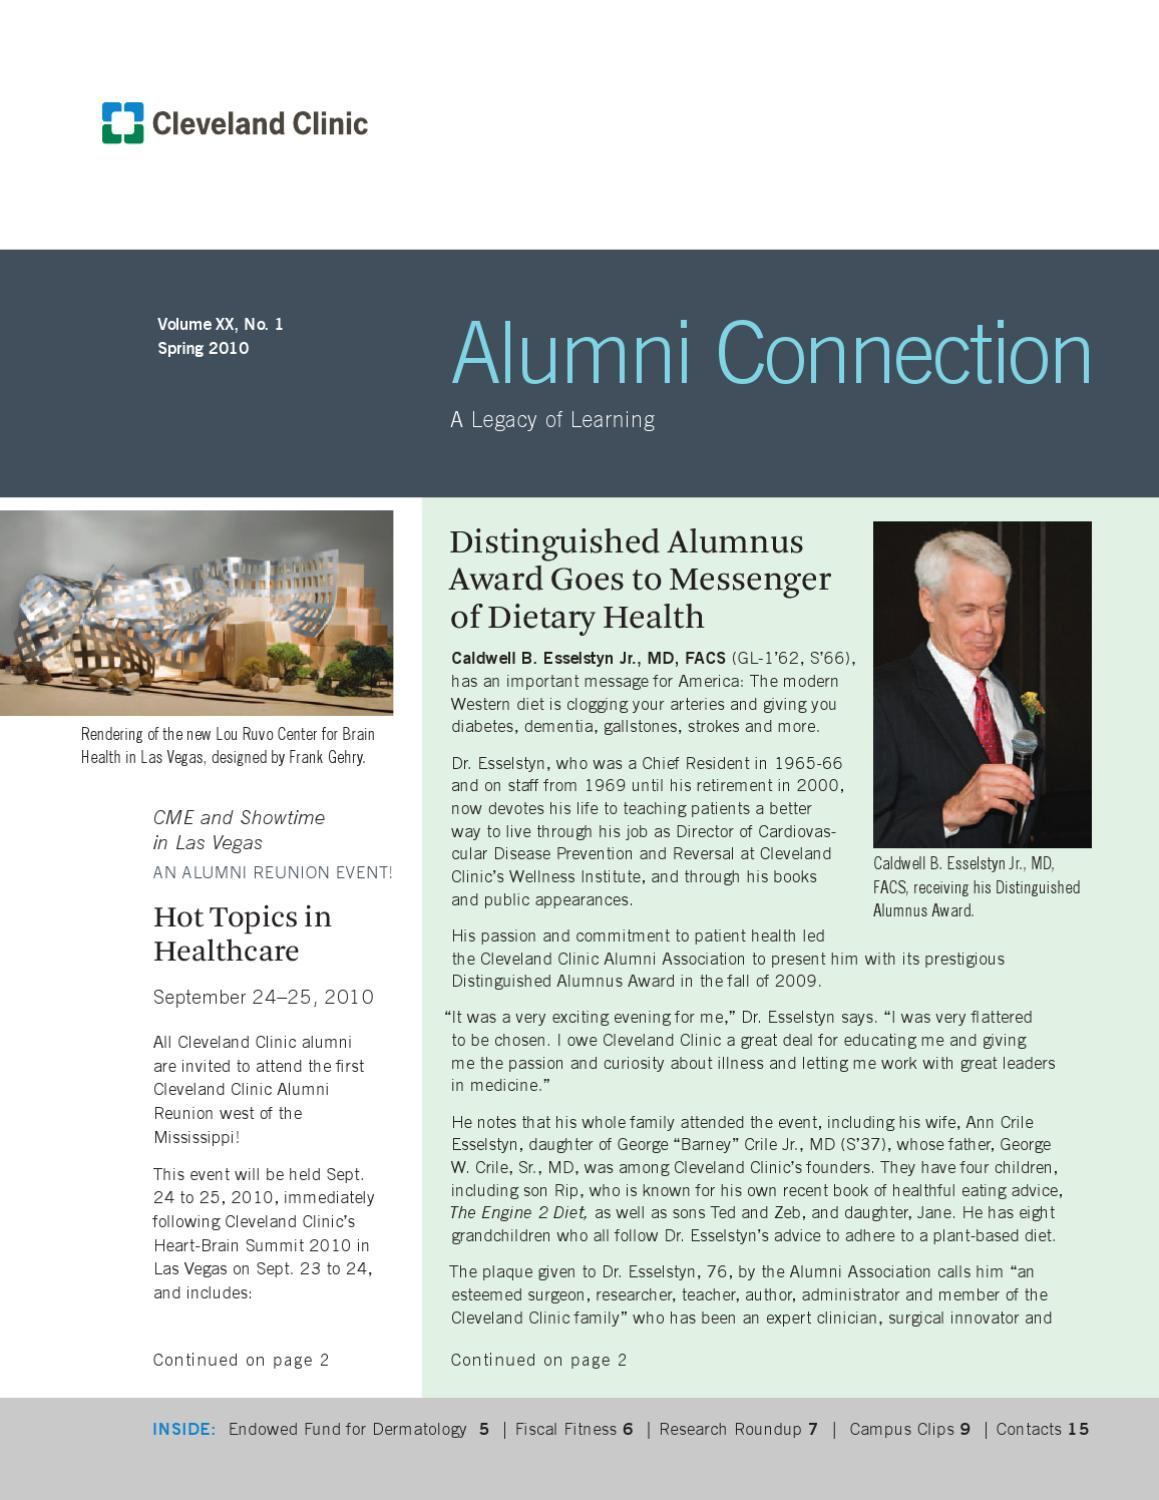 Cleveland Clinic Alumni Connection - Vol  XX No  1 by